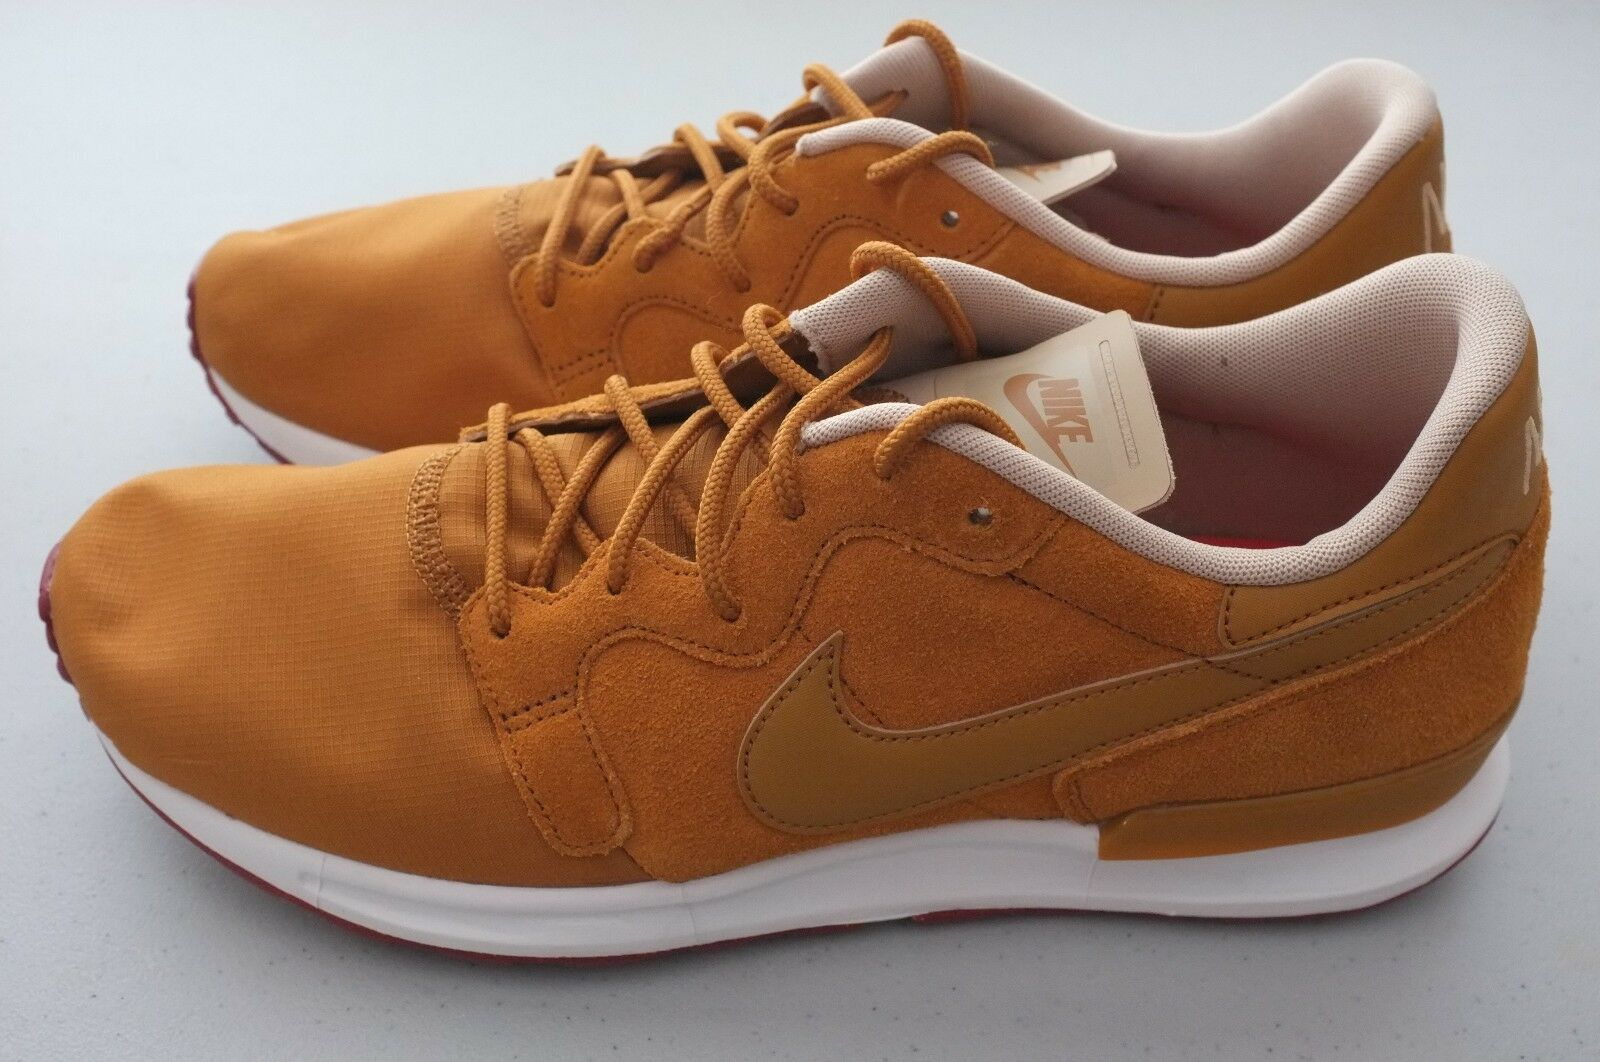 NEW Nike Mens Air Berwuda Premium Athletic shoes Tan Brown Sz 10 (844978-701)